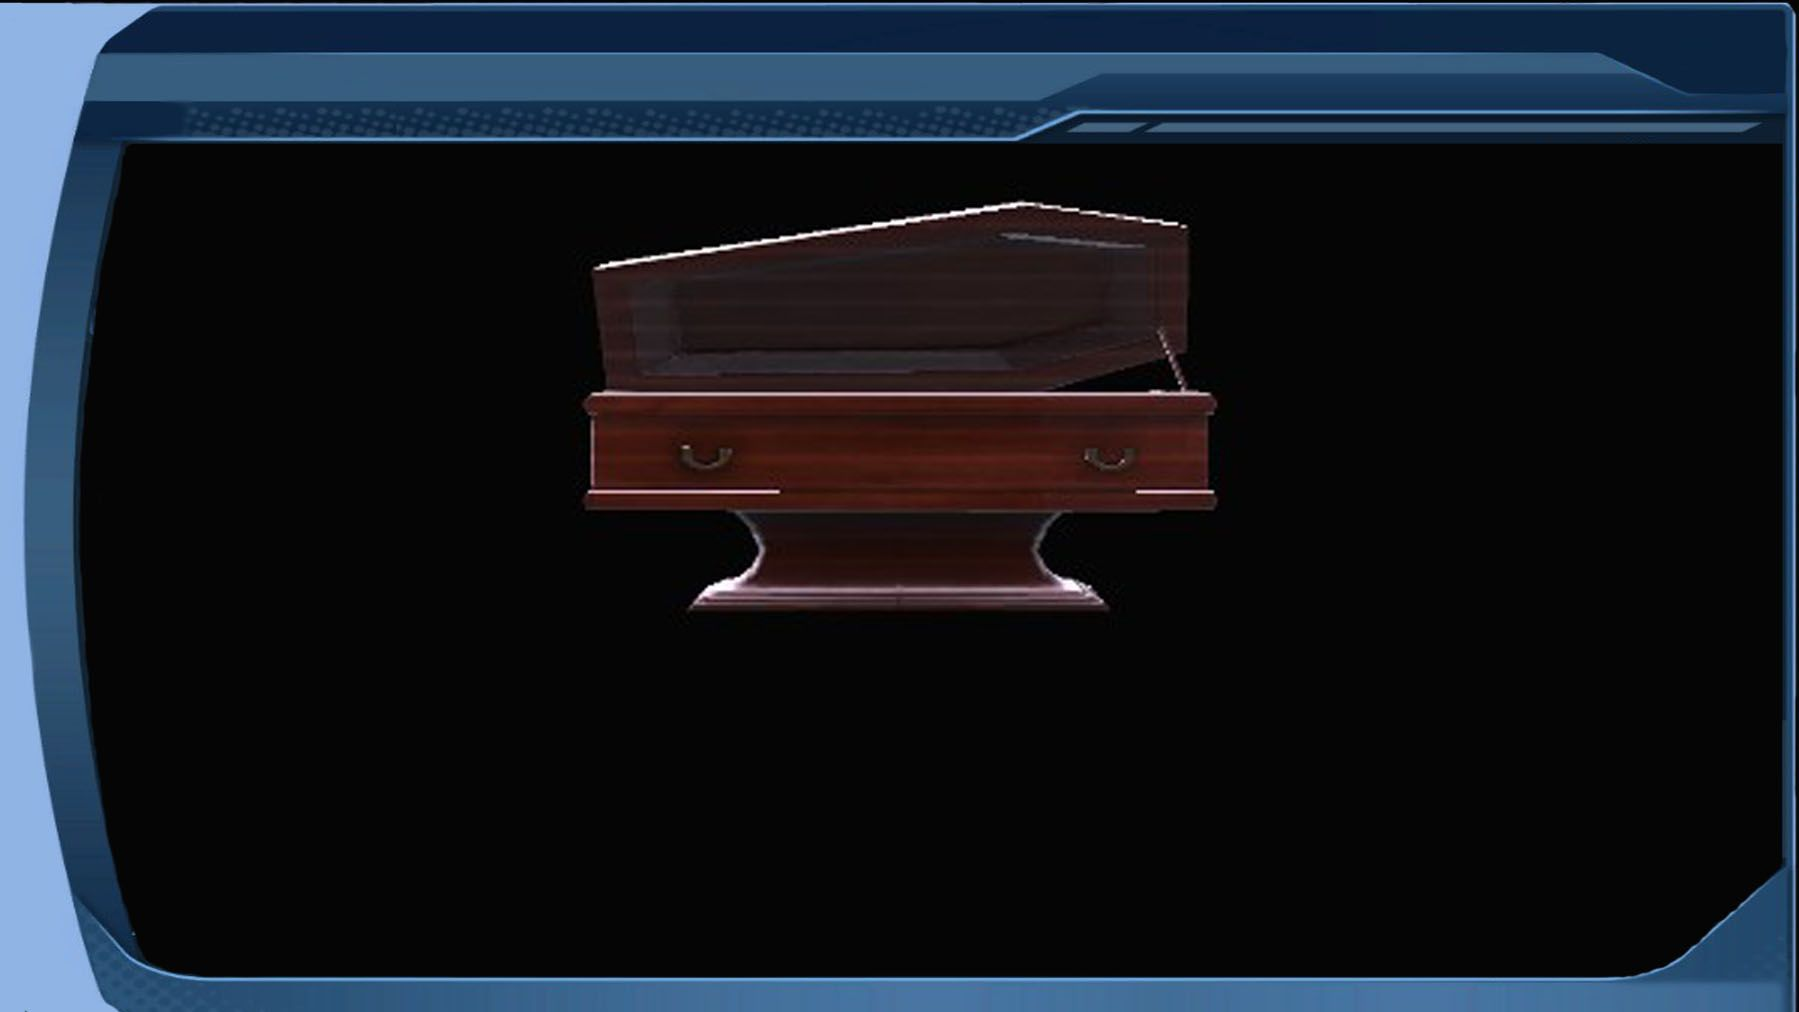 Creaky Coffin Bed DC Universe Online Fansite : CreakyCoffinBeddcuofurnitureCREAKYCOFFINBED from dcuo.mmorpg-life.com size 1799 x 1012 jpeg 75kB